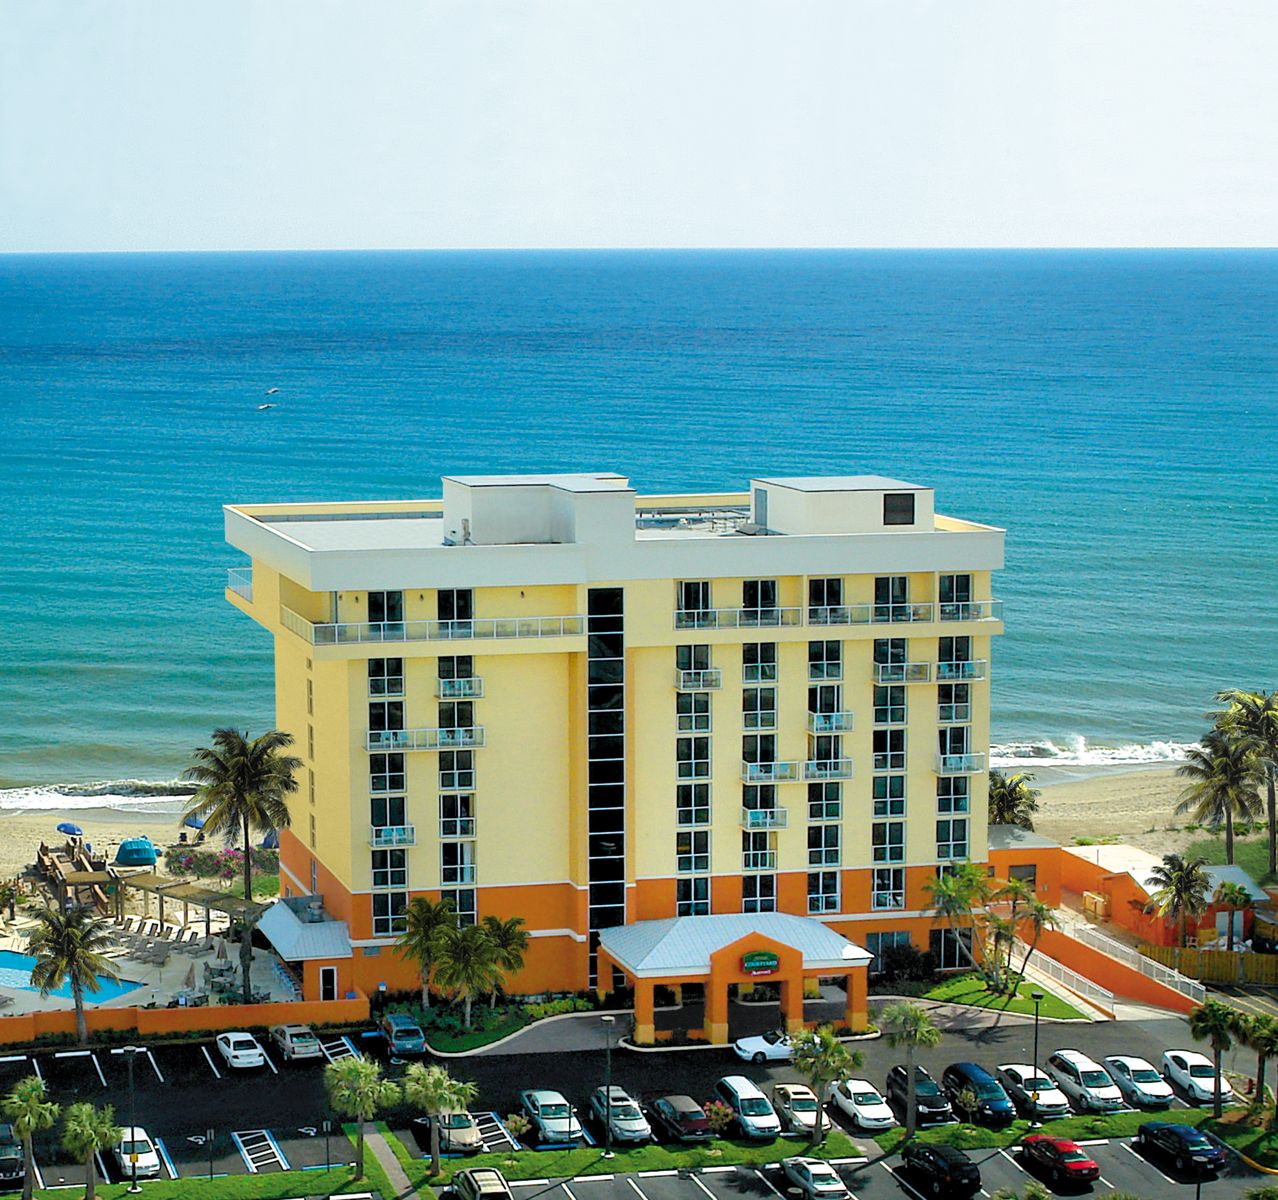 Port St Lucie Hotel: Your Favorite Brand Hotels